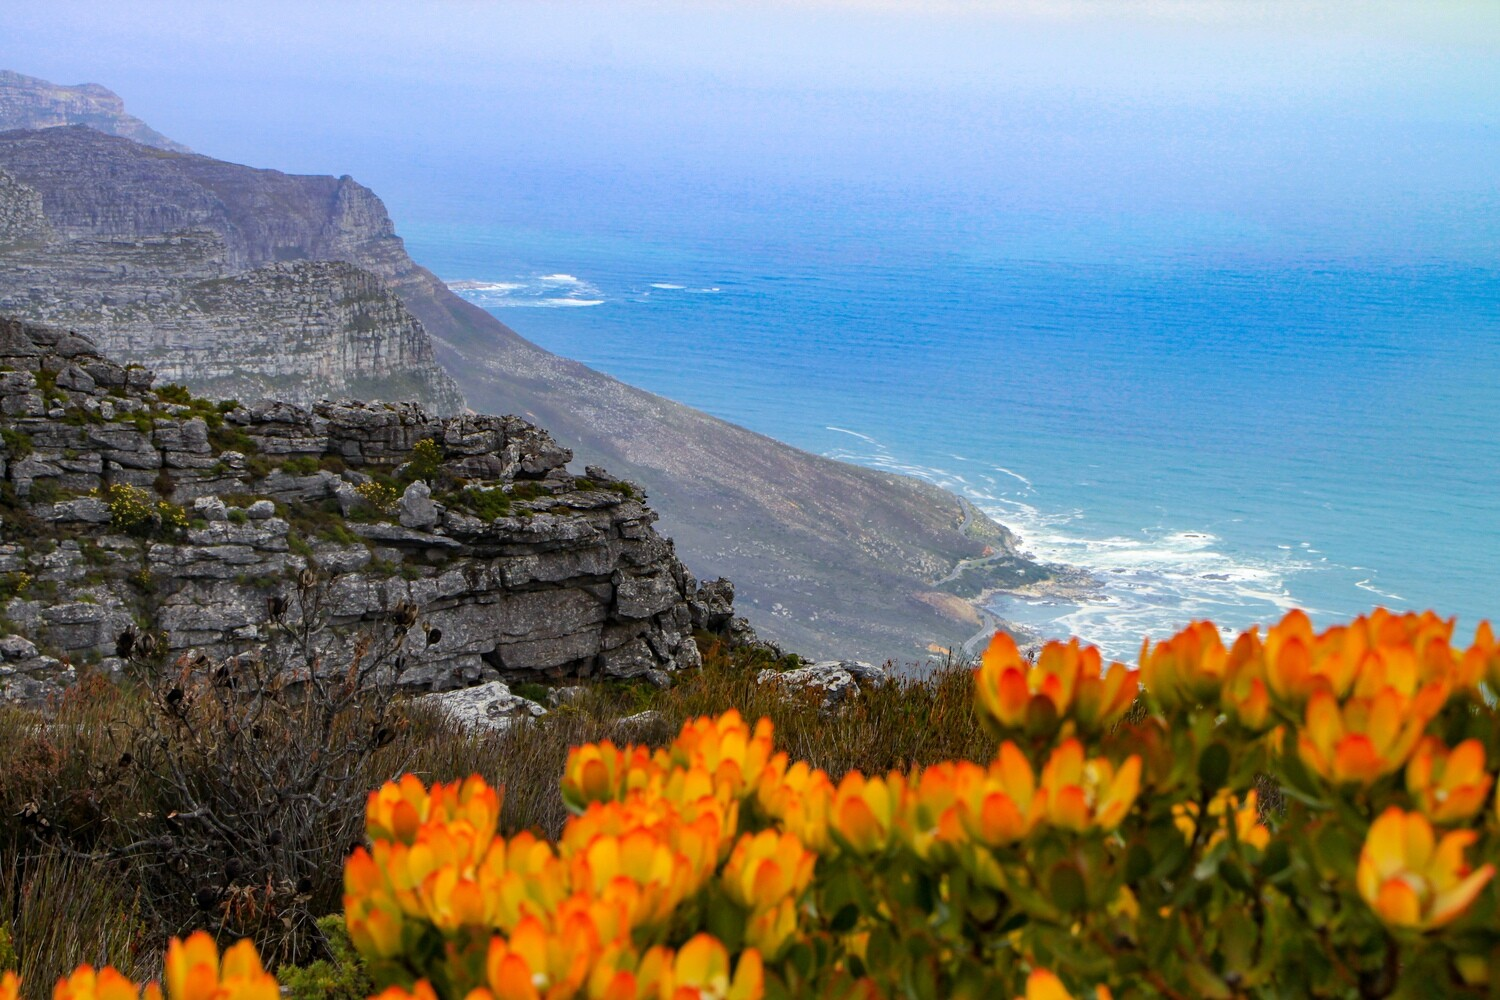 Top of Table Mountain Canvas Print and Lindt Chocolate Truffles